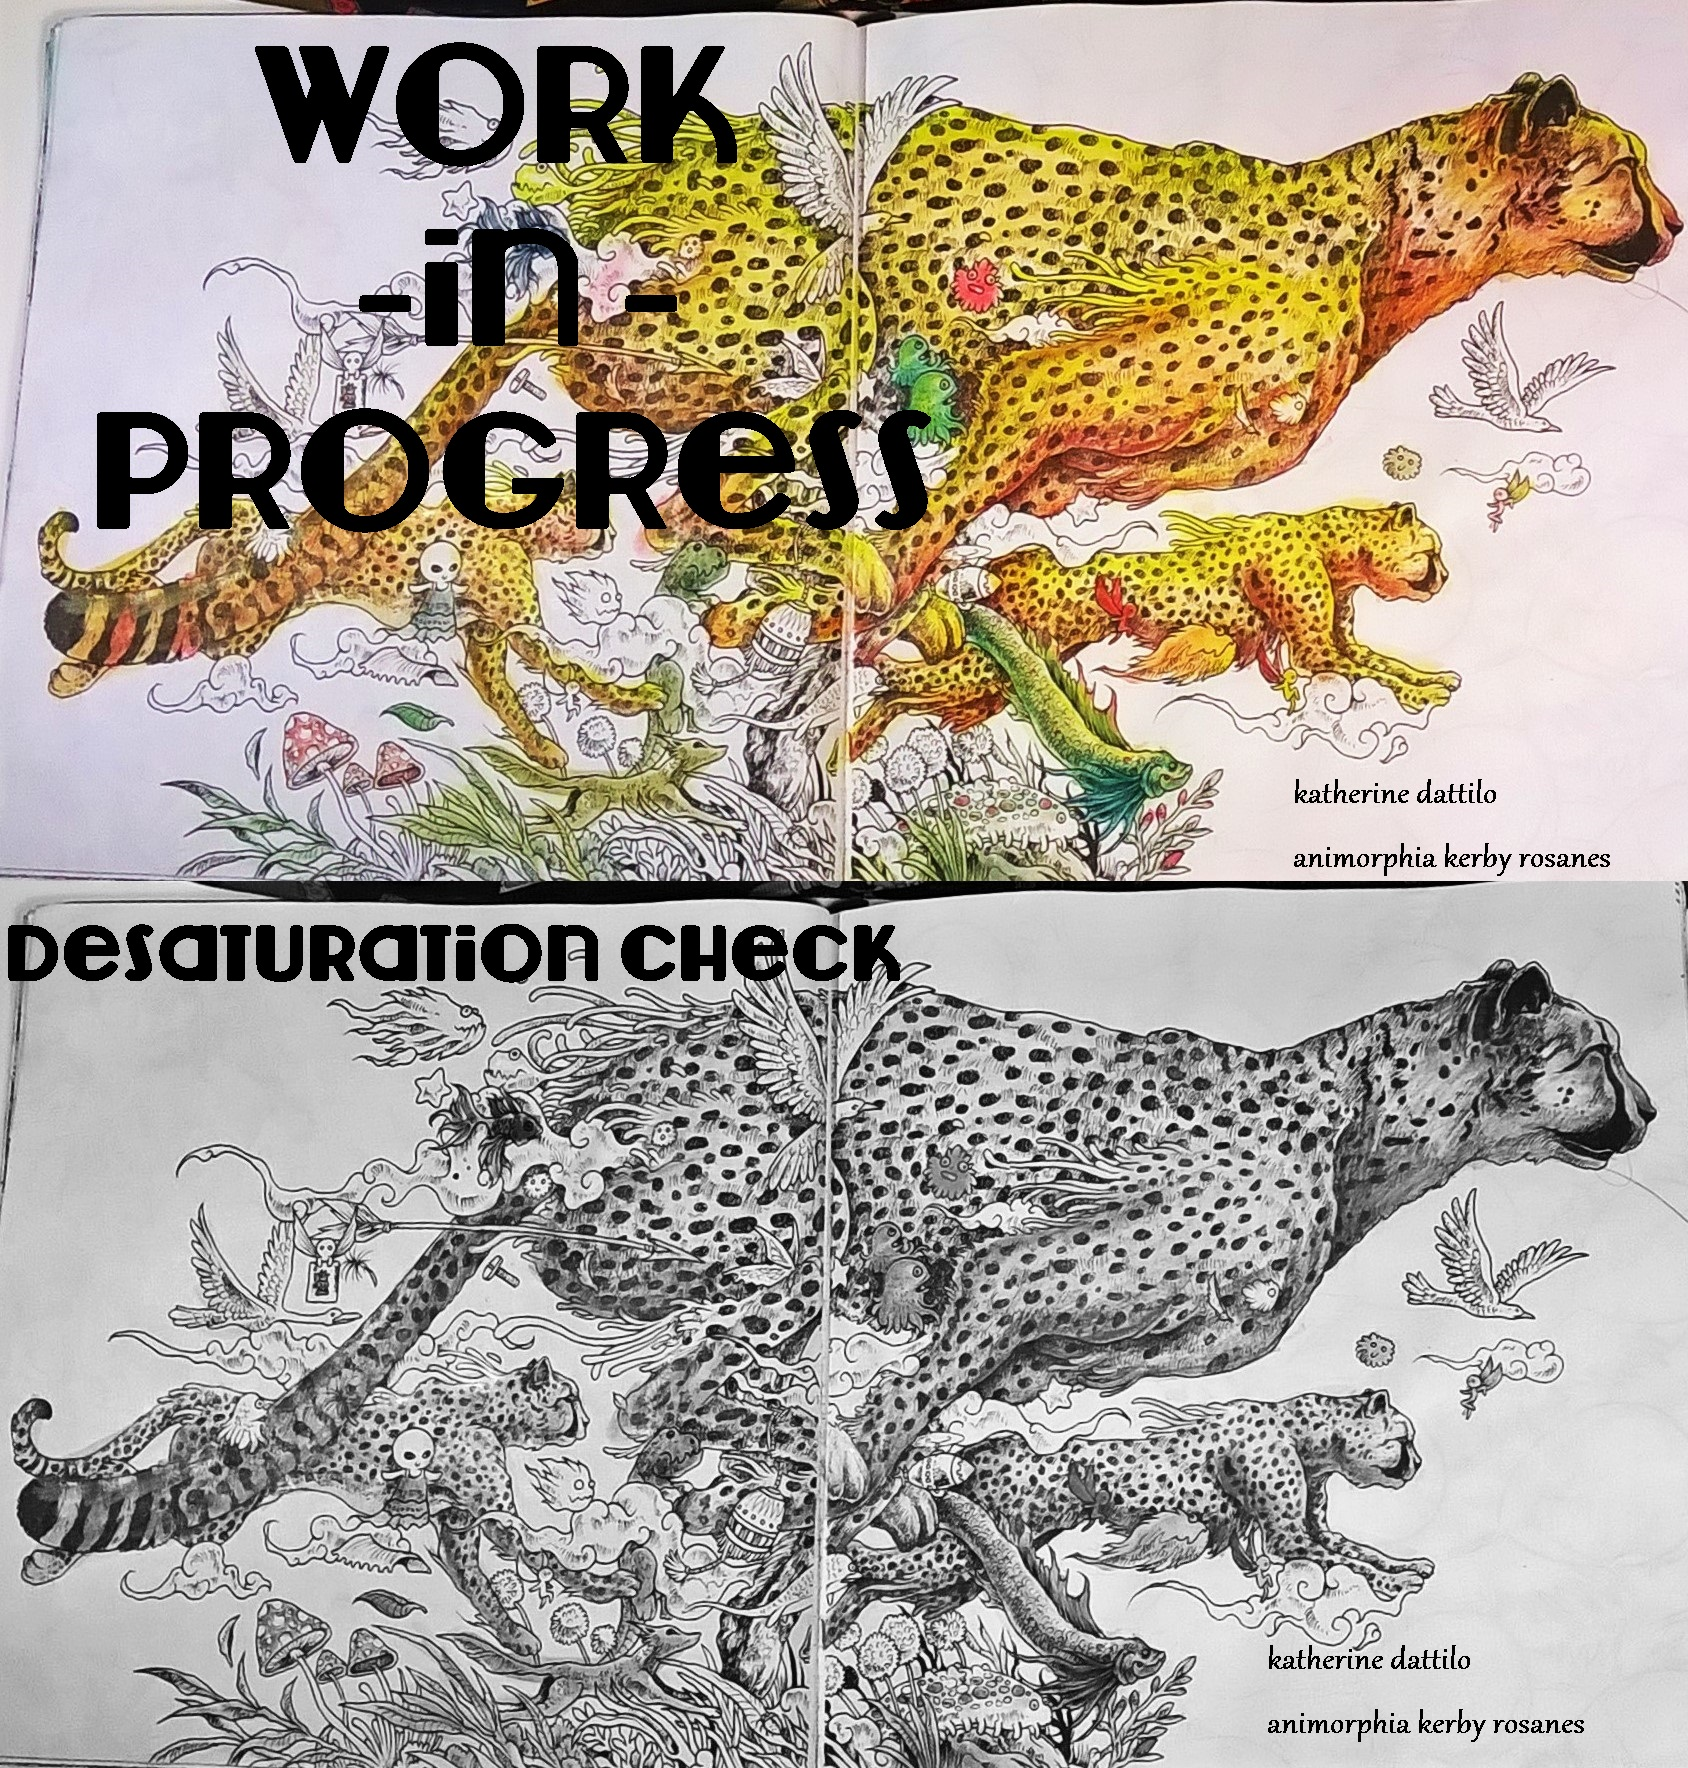 compare cheetah saturation